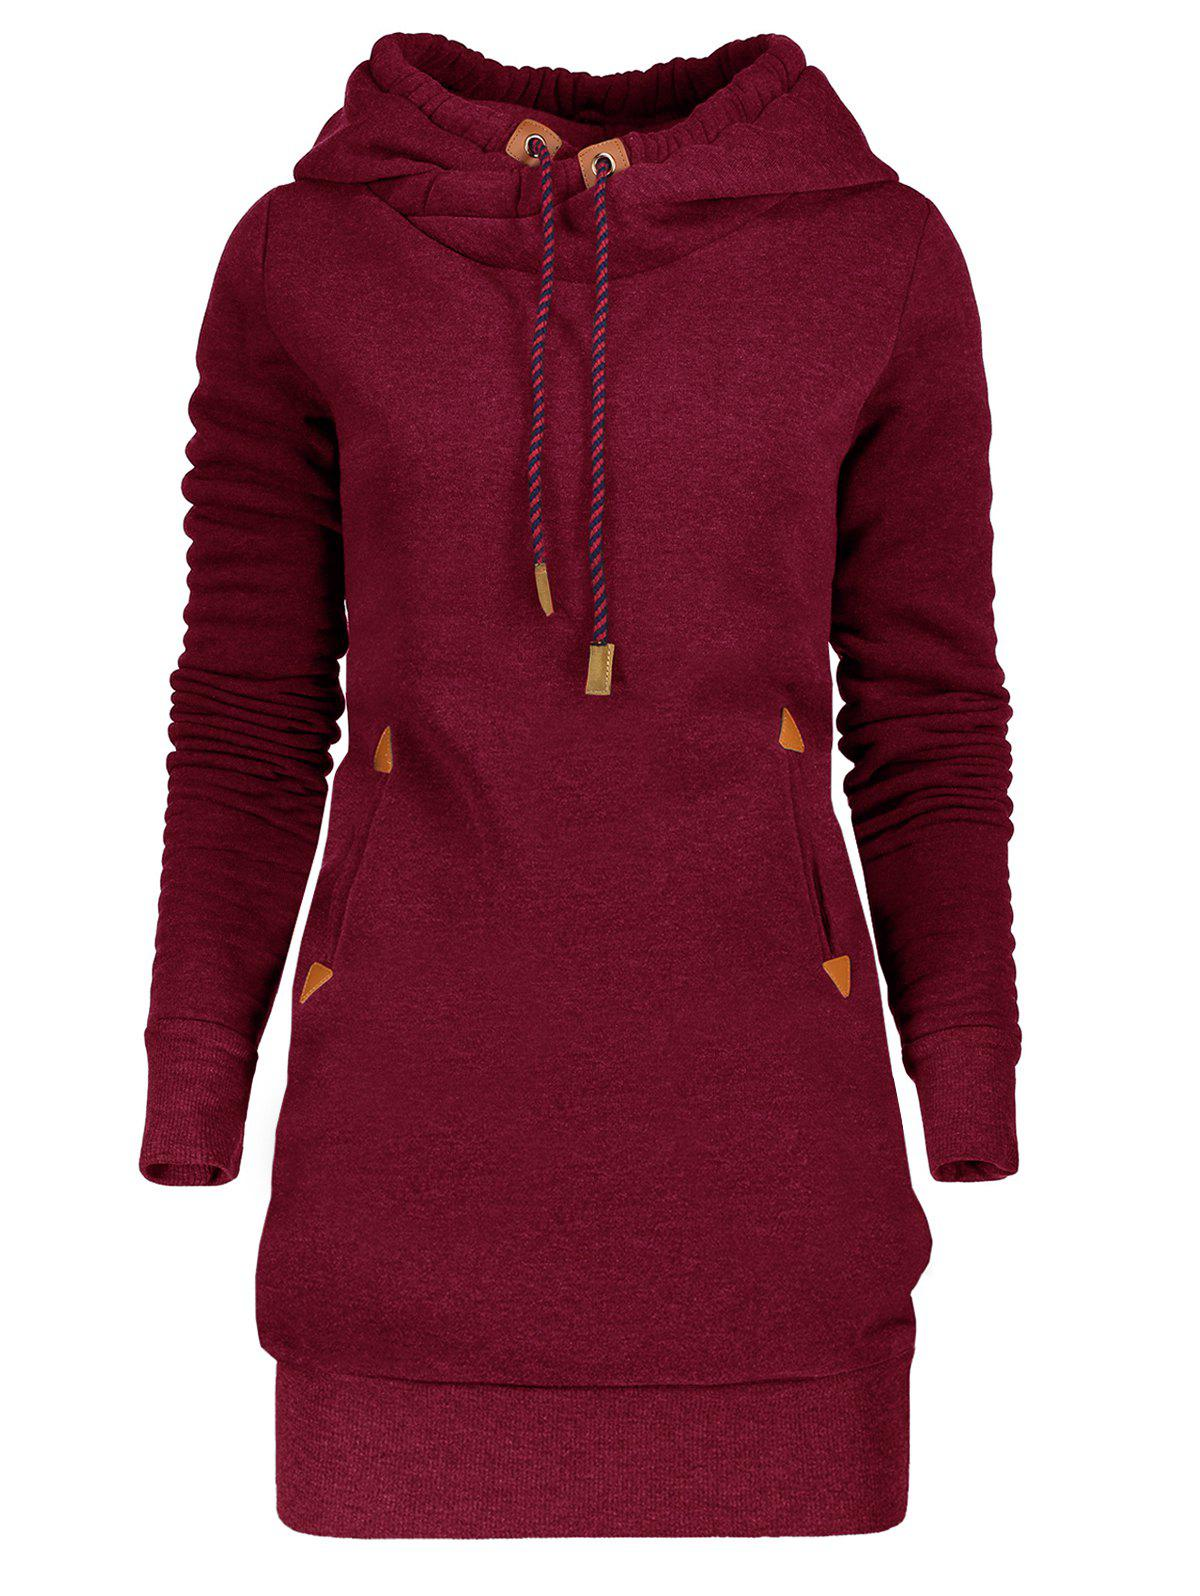 Drawstring Tunic Hoodie Dress with PocketWOMEN<br><br>Size: M; Color: WINE RED; Style: Casual; Material: Polyester; Silhouette: Bodycon; Dress Type: Hoodie Dress; Dresses Length: Mini; Neckline: Hooded; Sleeve Length: Long Sleeves; Waist: Natural; Embellishment: Pockets; Pattern Type: Solid Color; With Belt: No; Season: Fall,Spring,Winter; Weight: 0.3500kg; Package Contents: 1 x Dress; Occasion: Casual ,Outdoor;